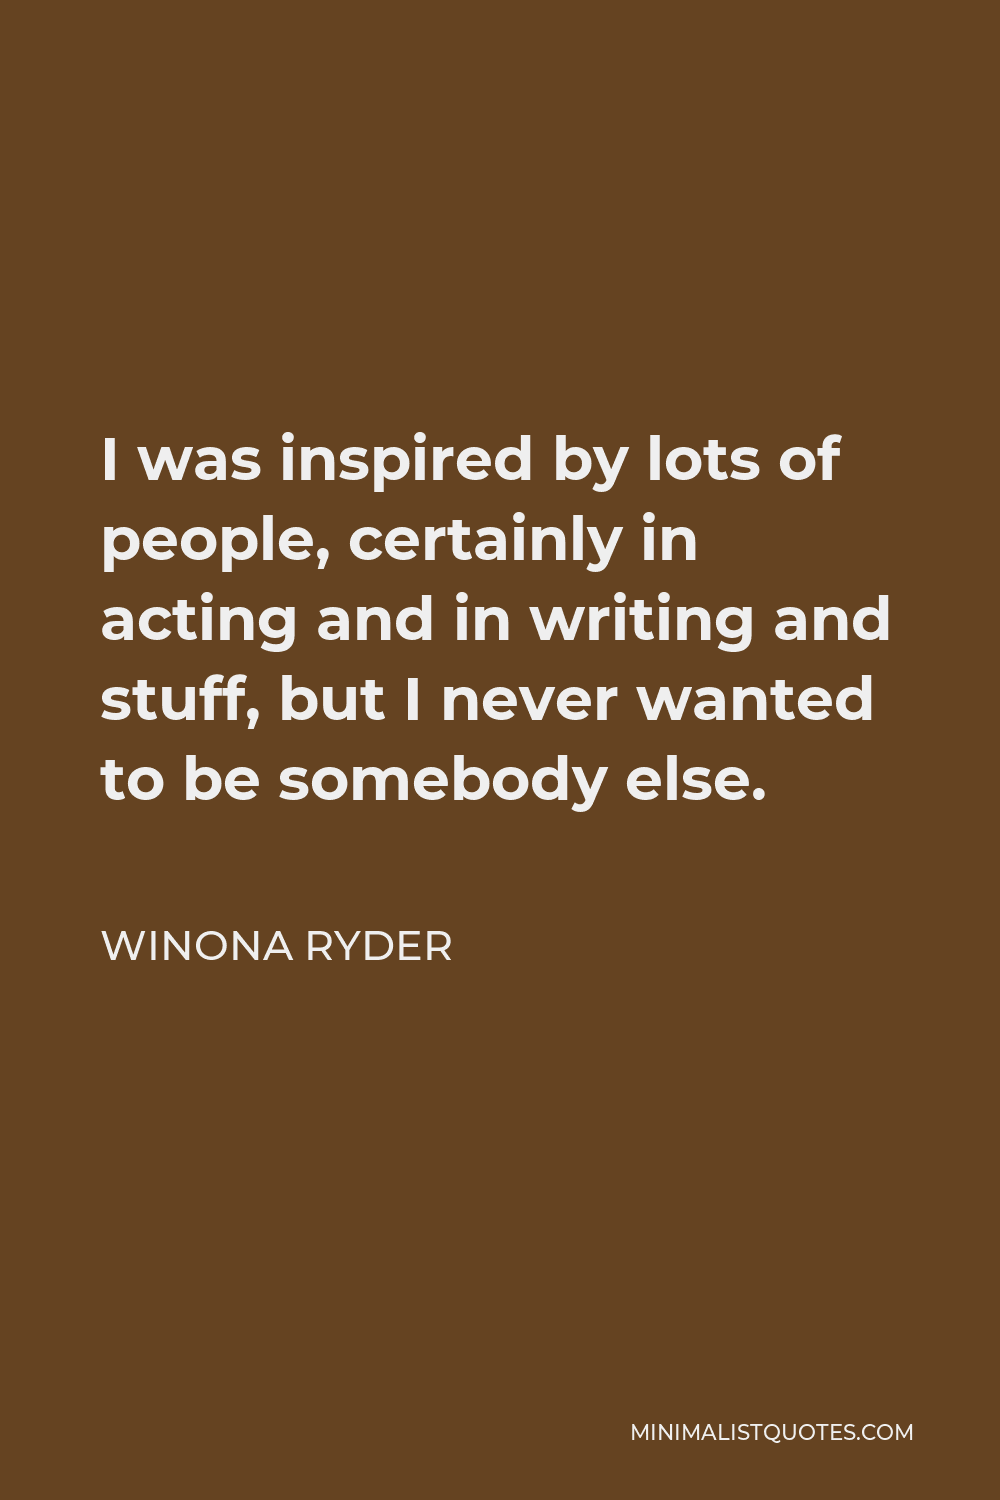 Winona Ryder Quote - I was inspired by lots of people, certainly in acting and in writing and stuff, but I never wanted to be somebody else.